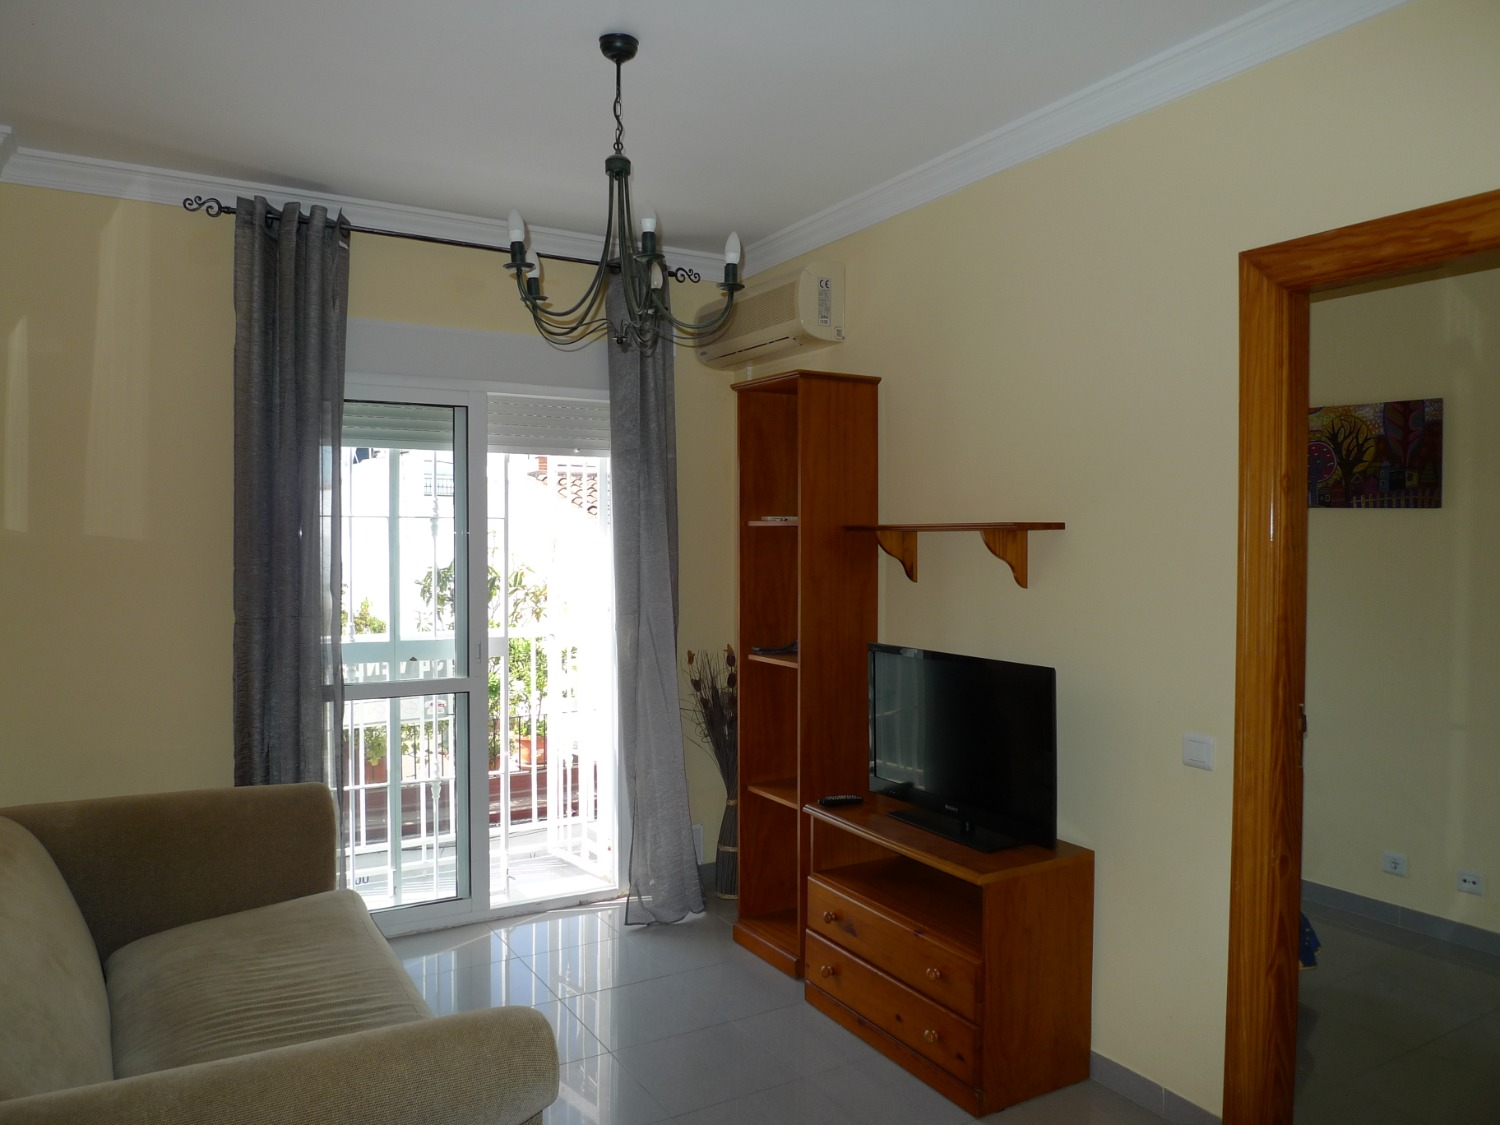 3-bedroom apartment for sale in the old town of Nerja